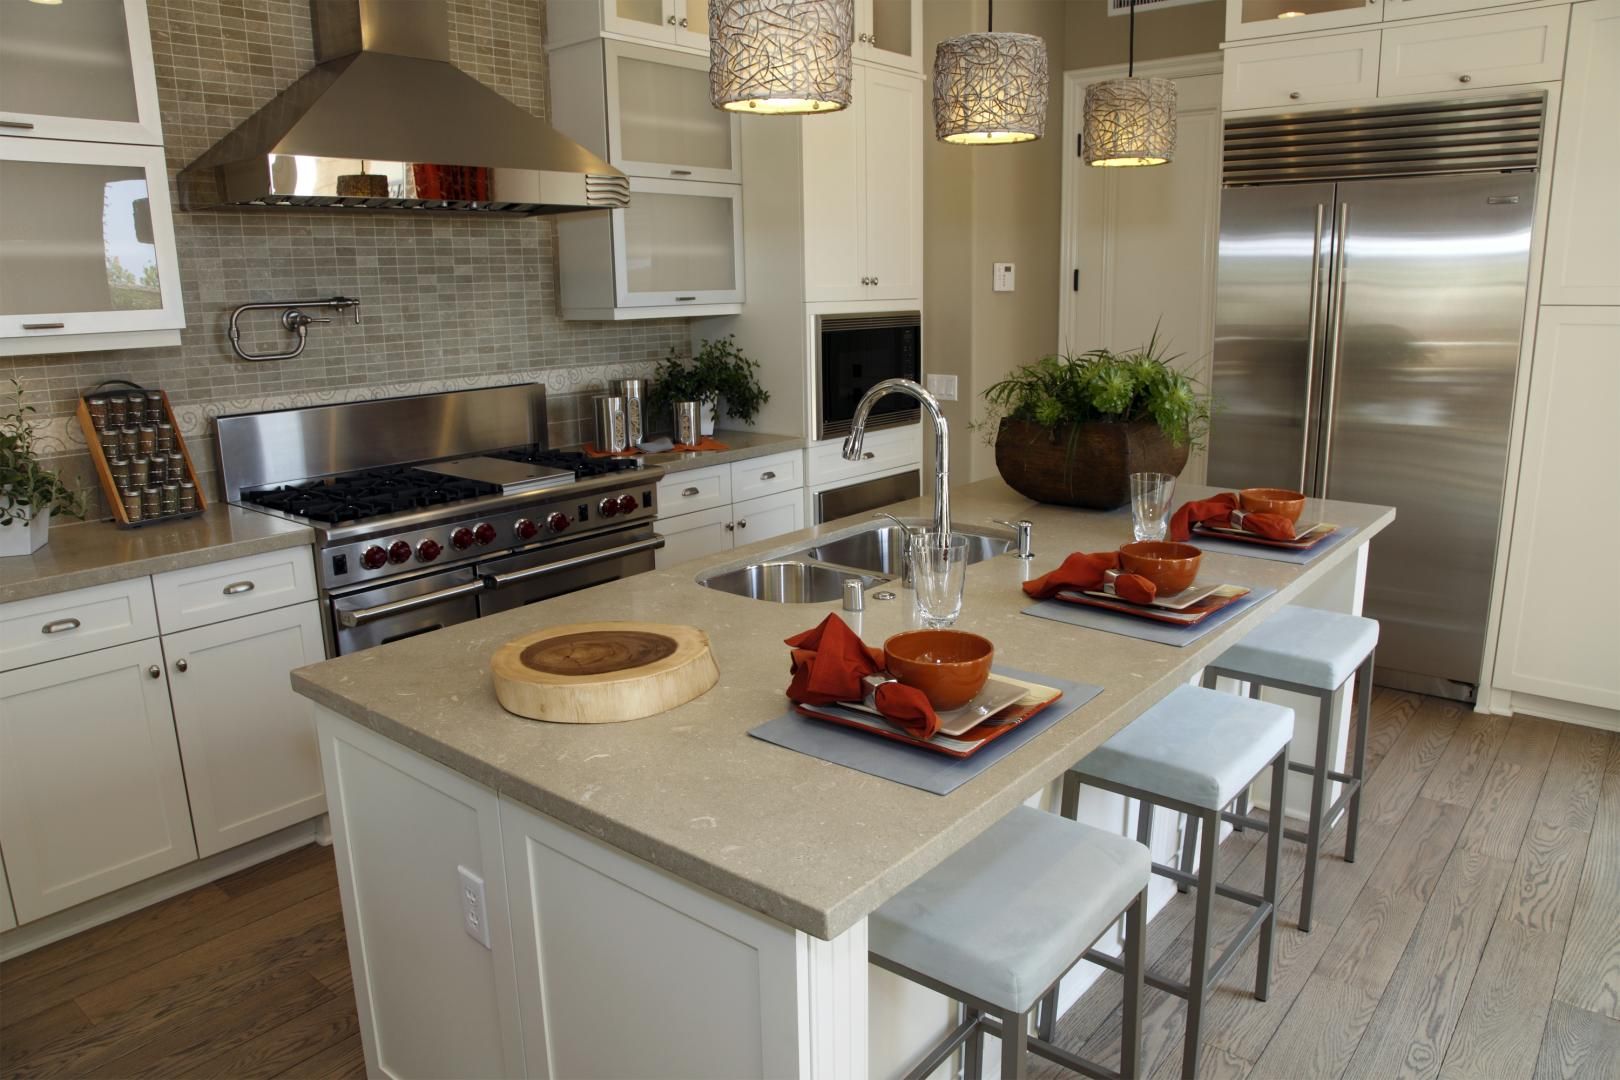 Kitchen Design Websites Concept Kitchen Design Concepts  Mattituck Riverhead Cutchogue .